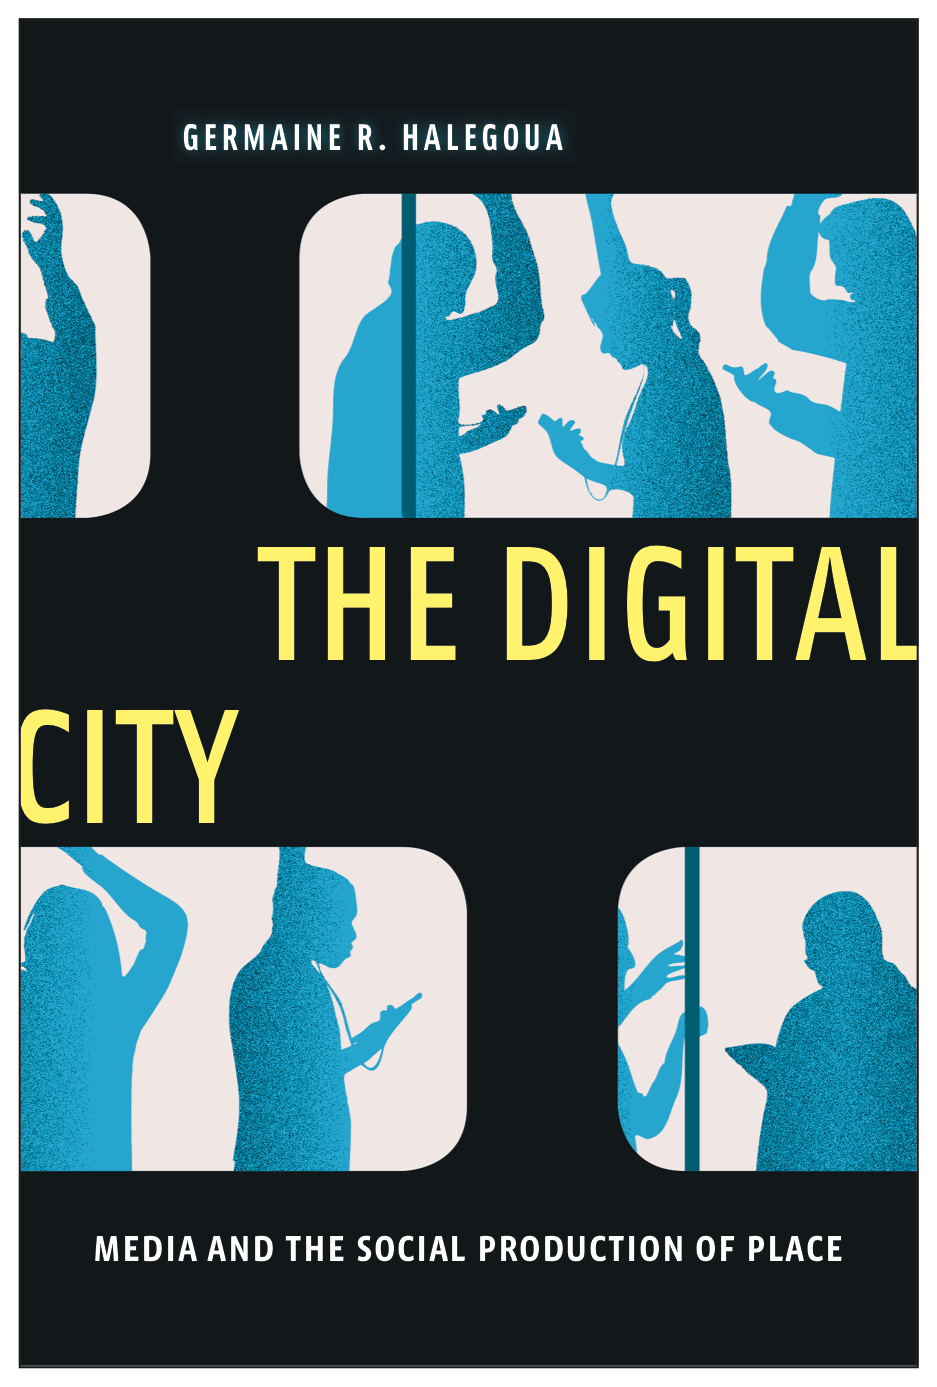 Mediapolis Q&A: Germaine R. Halegoua's The Digital City